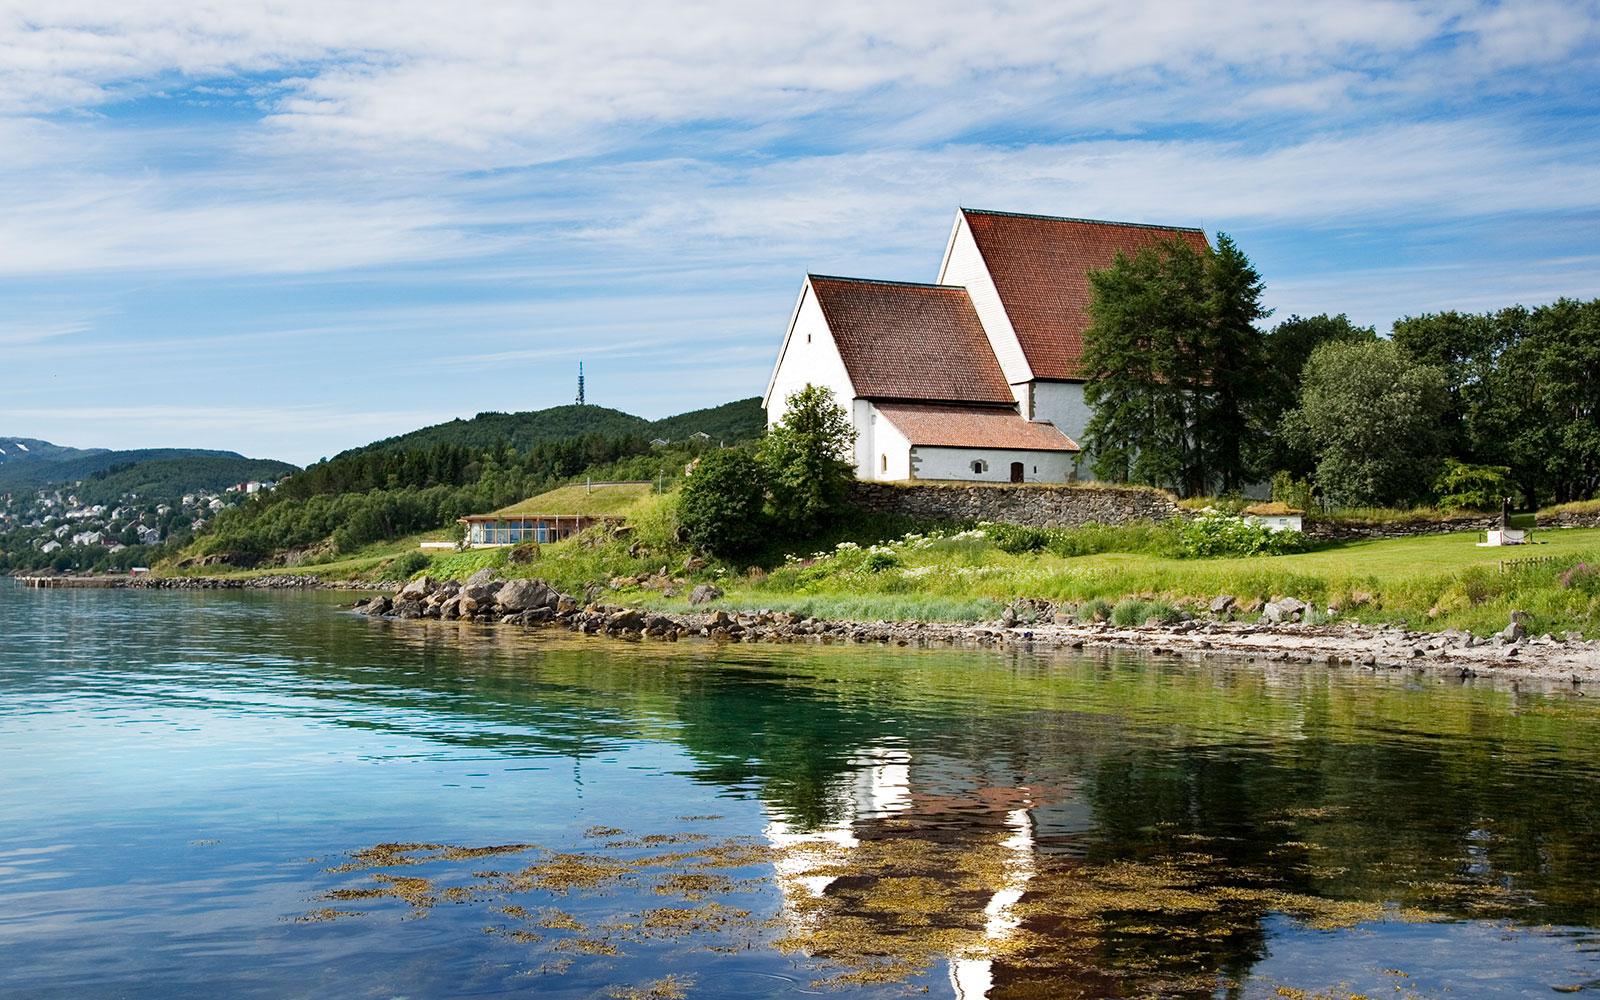 Cruise the fjords of Norway on the Hurtigruten